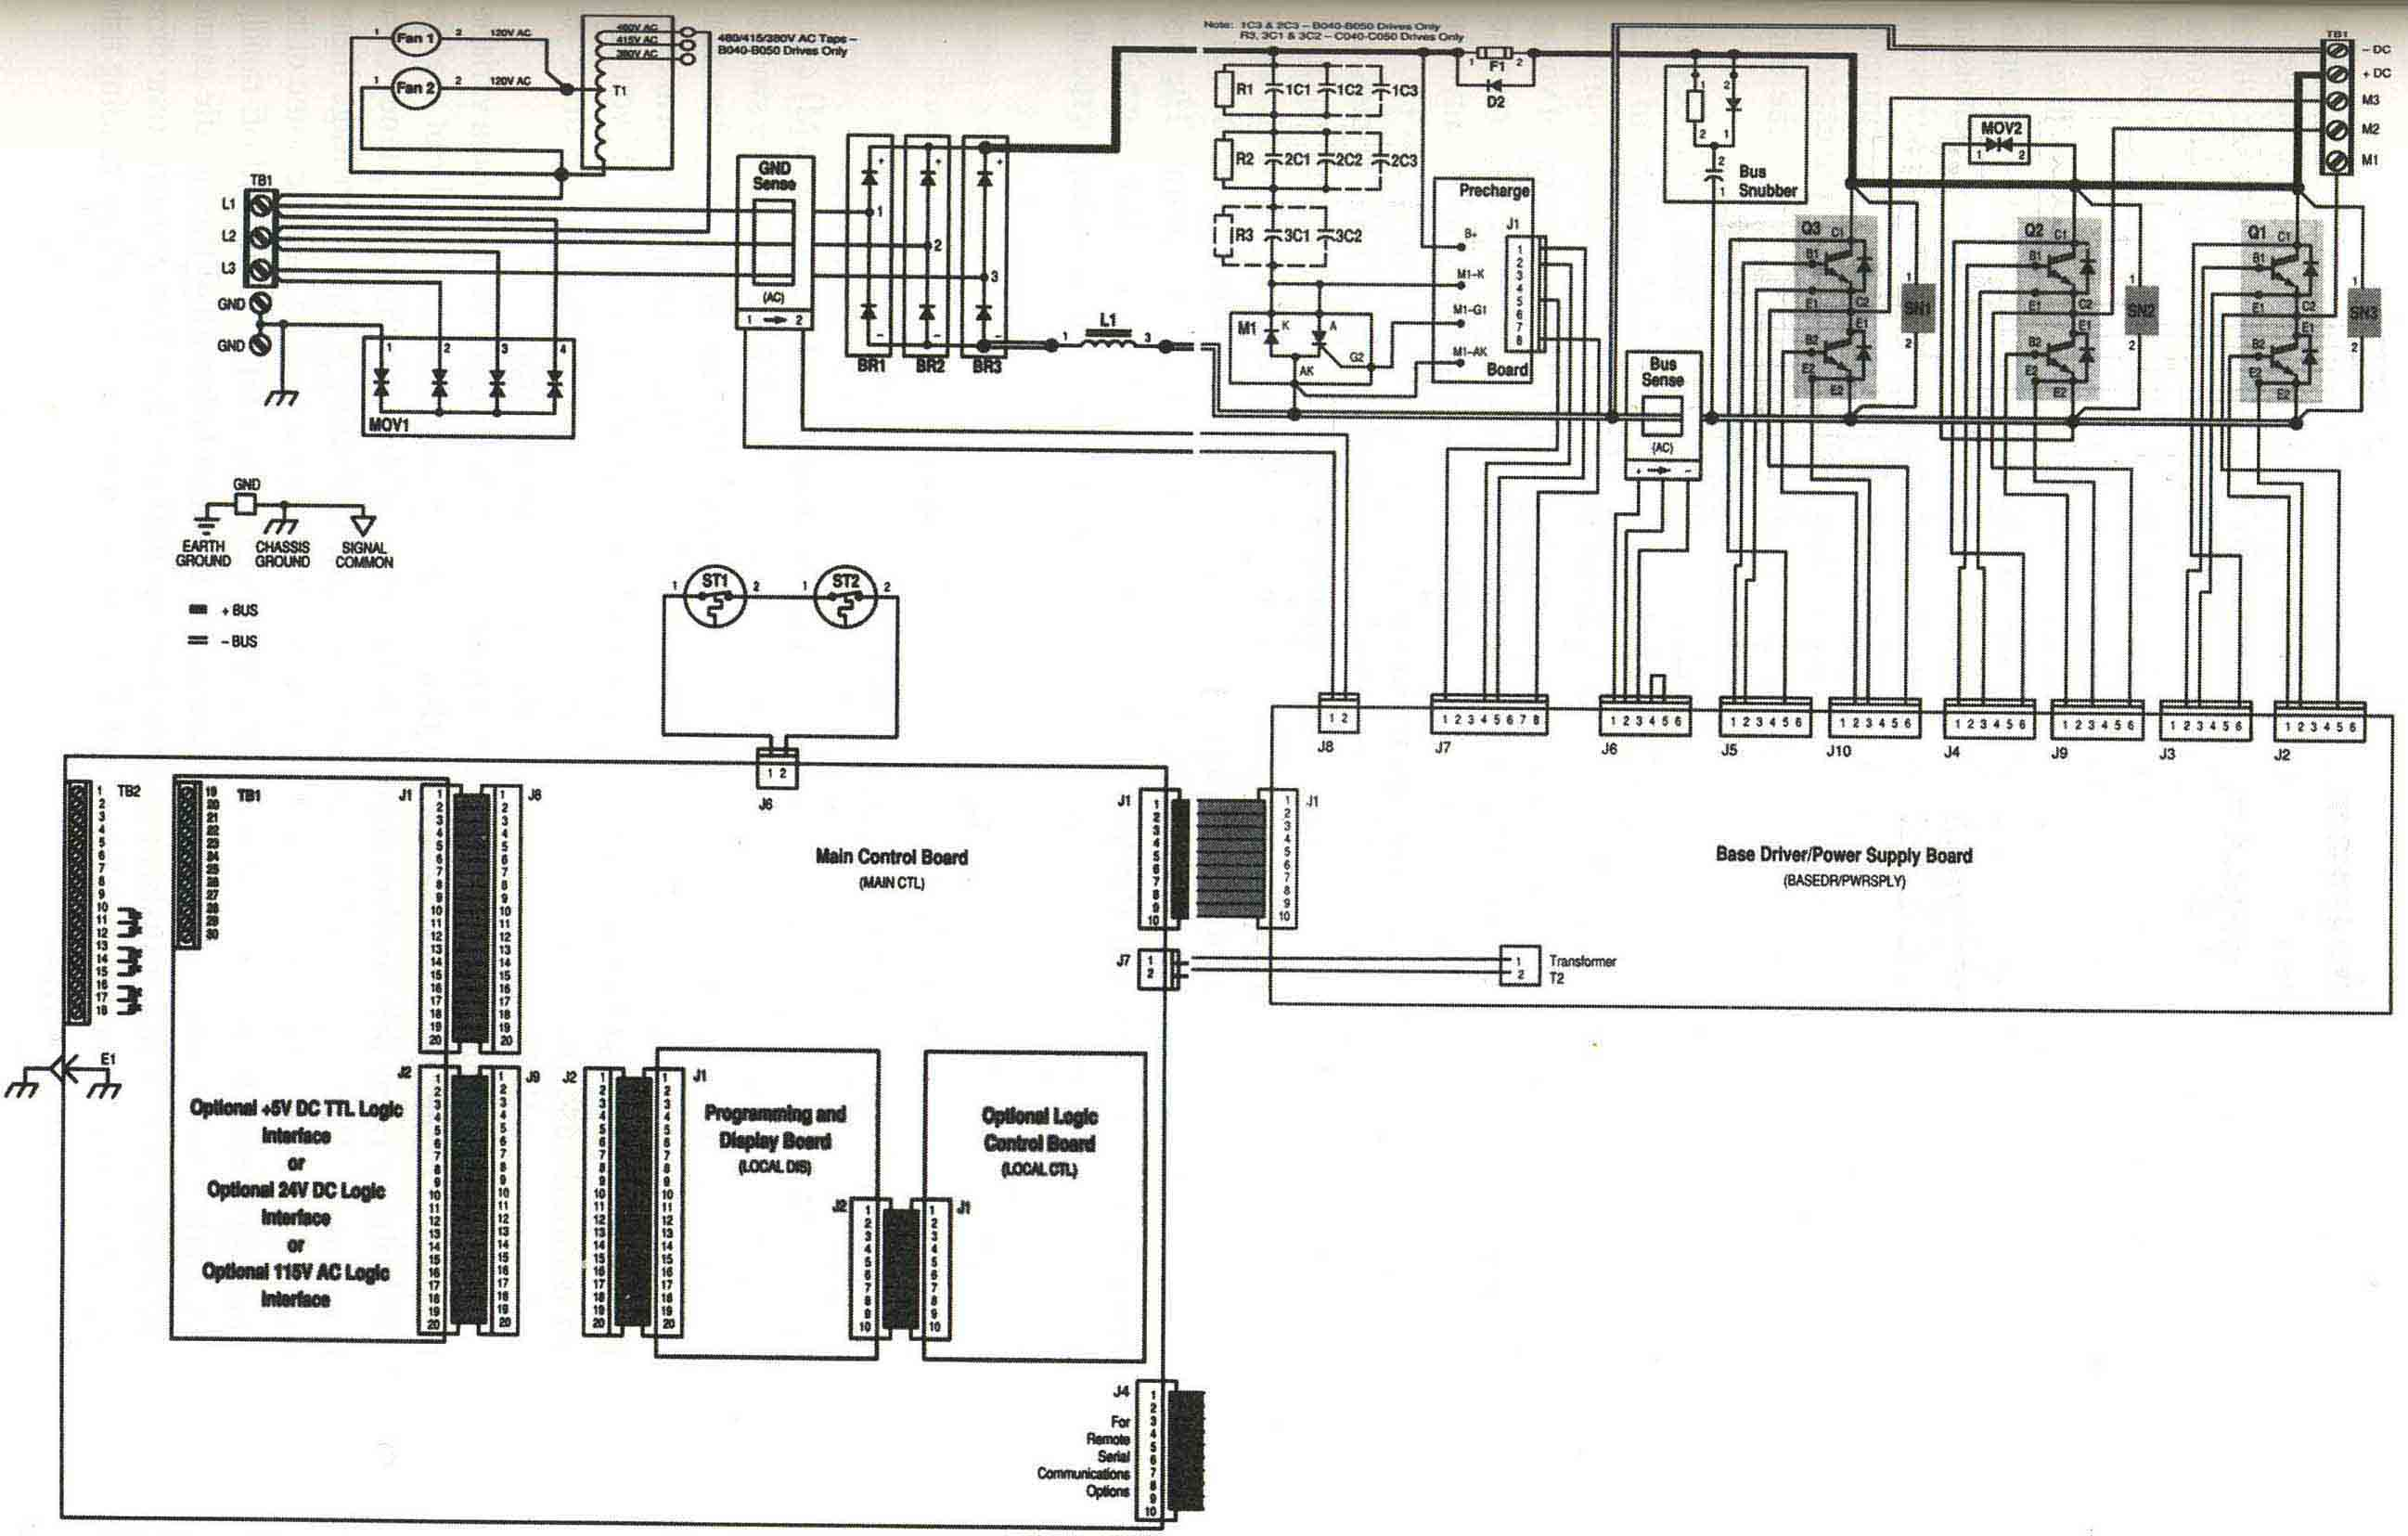 Allen Bradley 1336 schematic solid state circuits for variable frequency drives 3 phase vfd wiring diagram at mr168.co